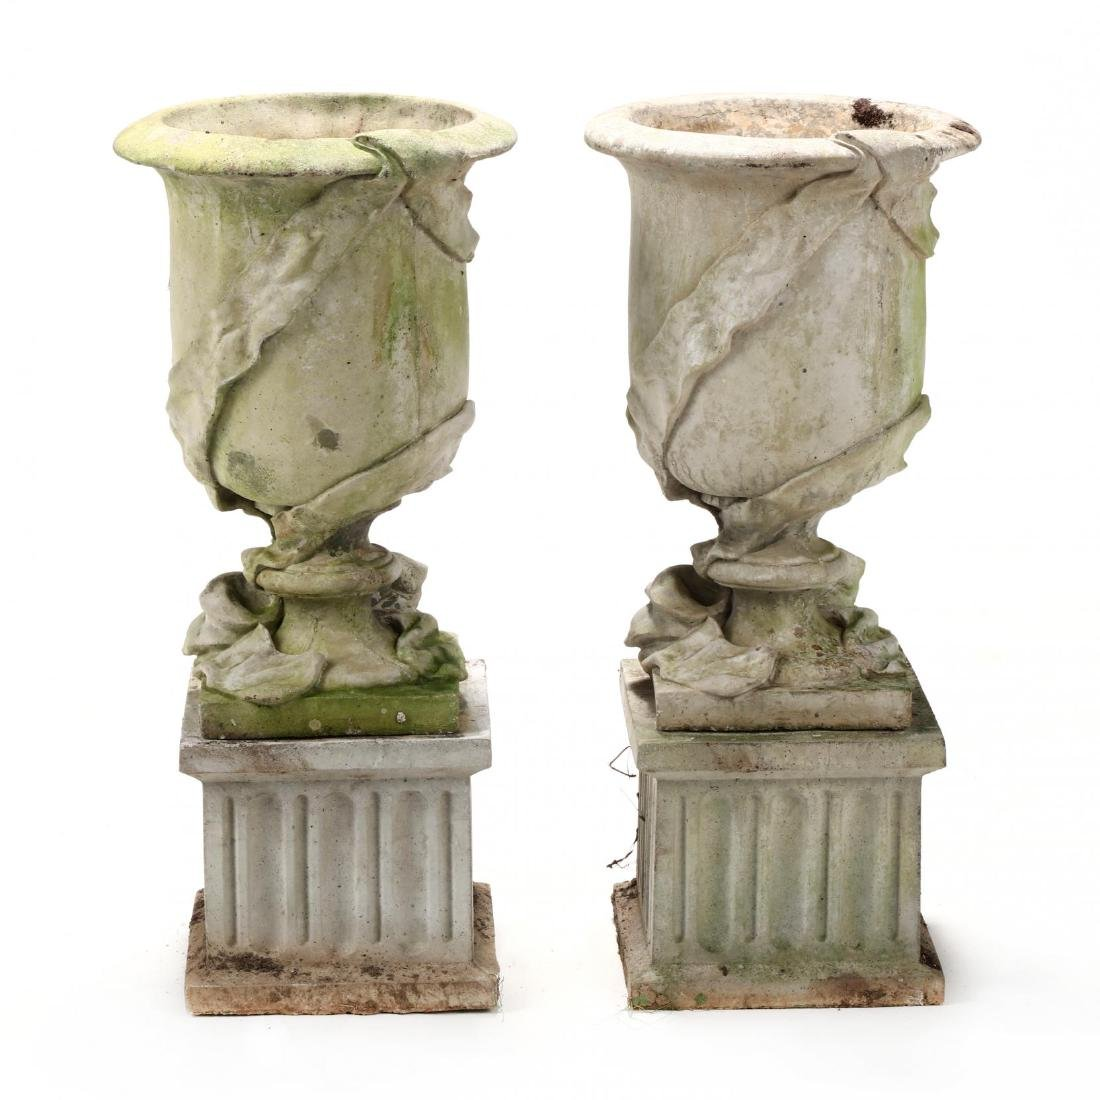 Pair of Cast Stone Classical Garden Urns on Stands - 4